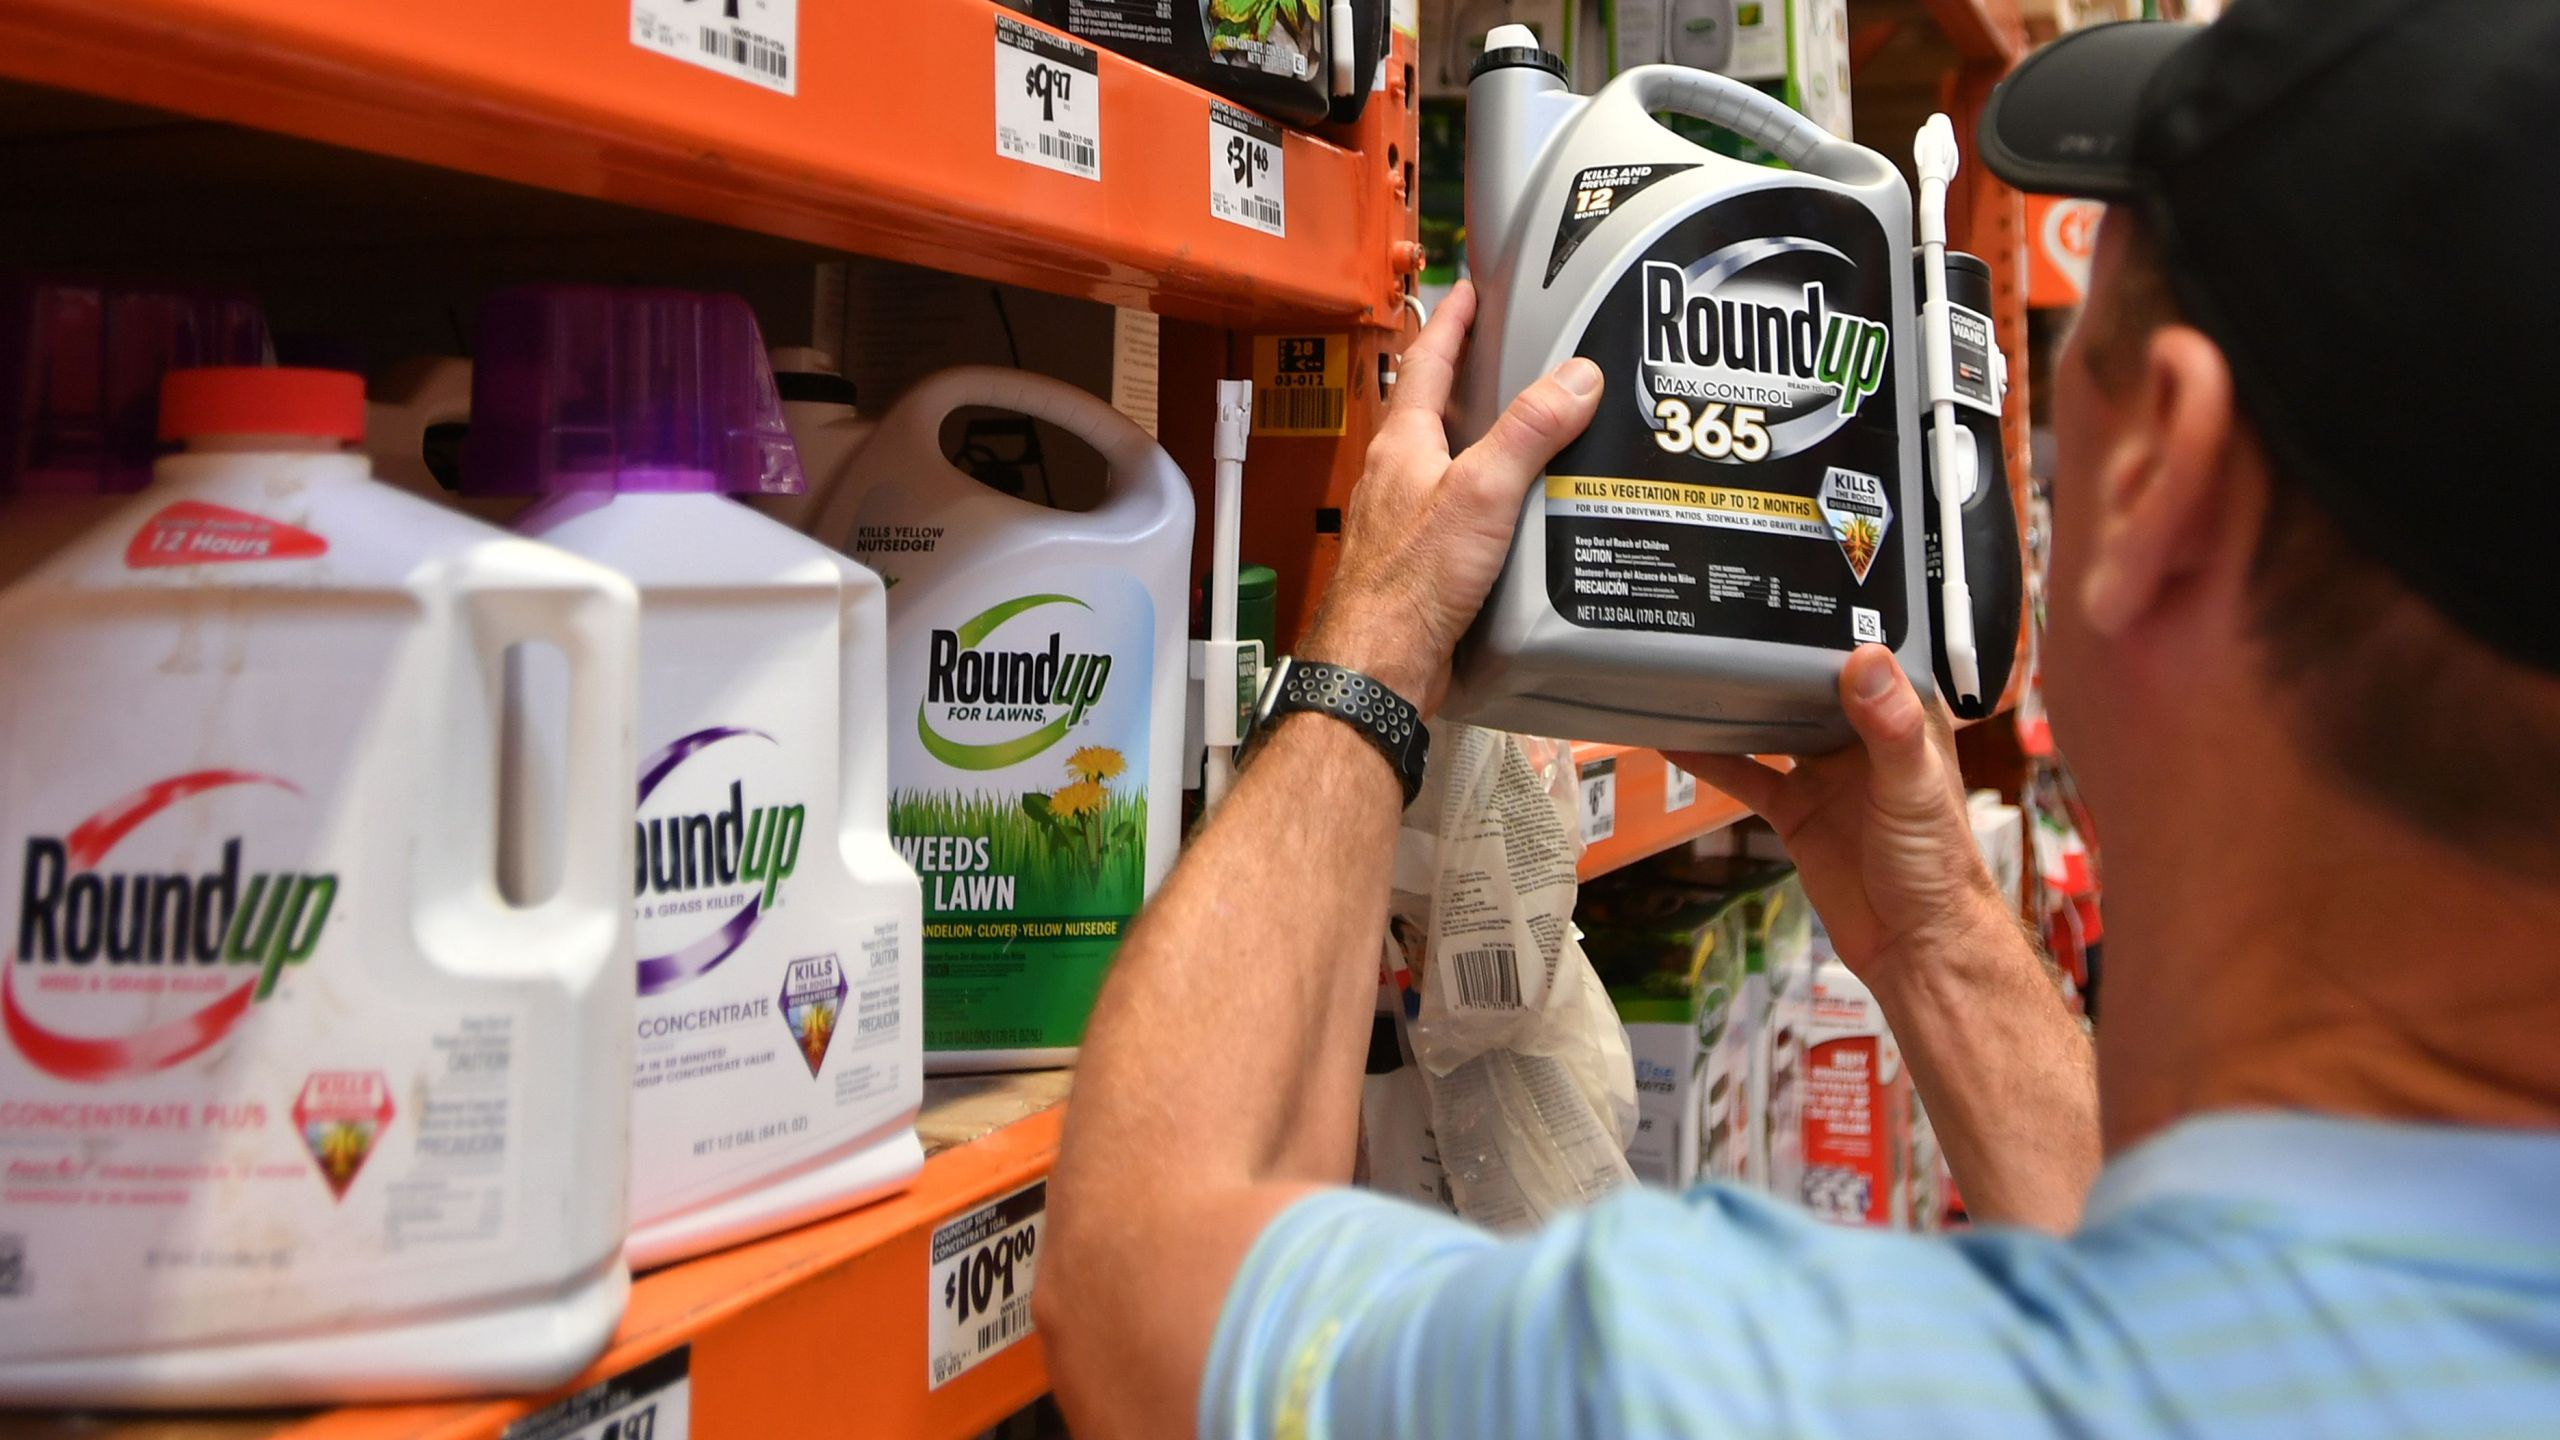 A customer shops for Roundup products at a store in San Rafael, California, on July, 9, 2018. (Credit: Josh Edelson/AFP/Getty Images)